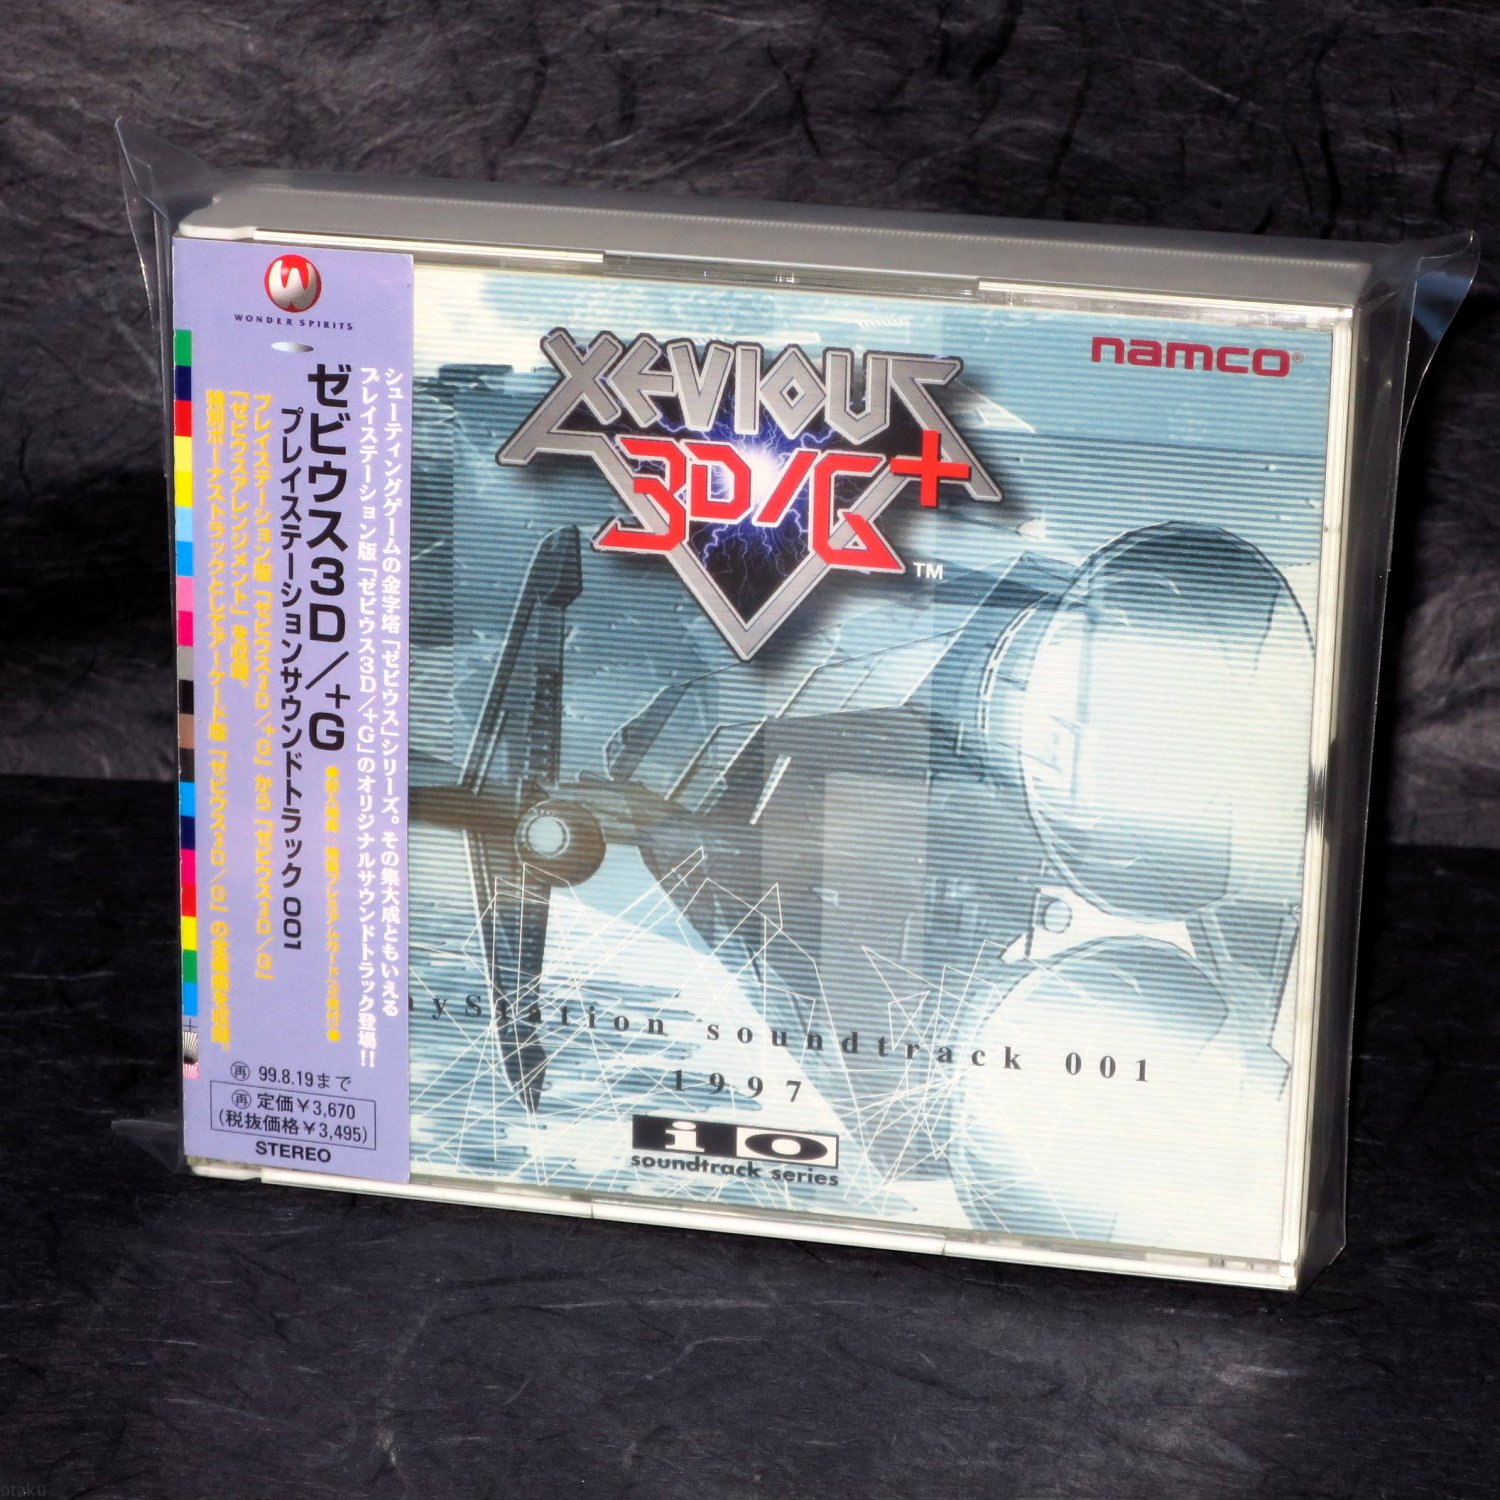 XEVIOUS 3D/G+ PlayStation Soundtrack 001 Japan Namco PS1